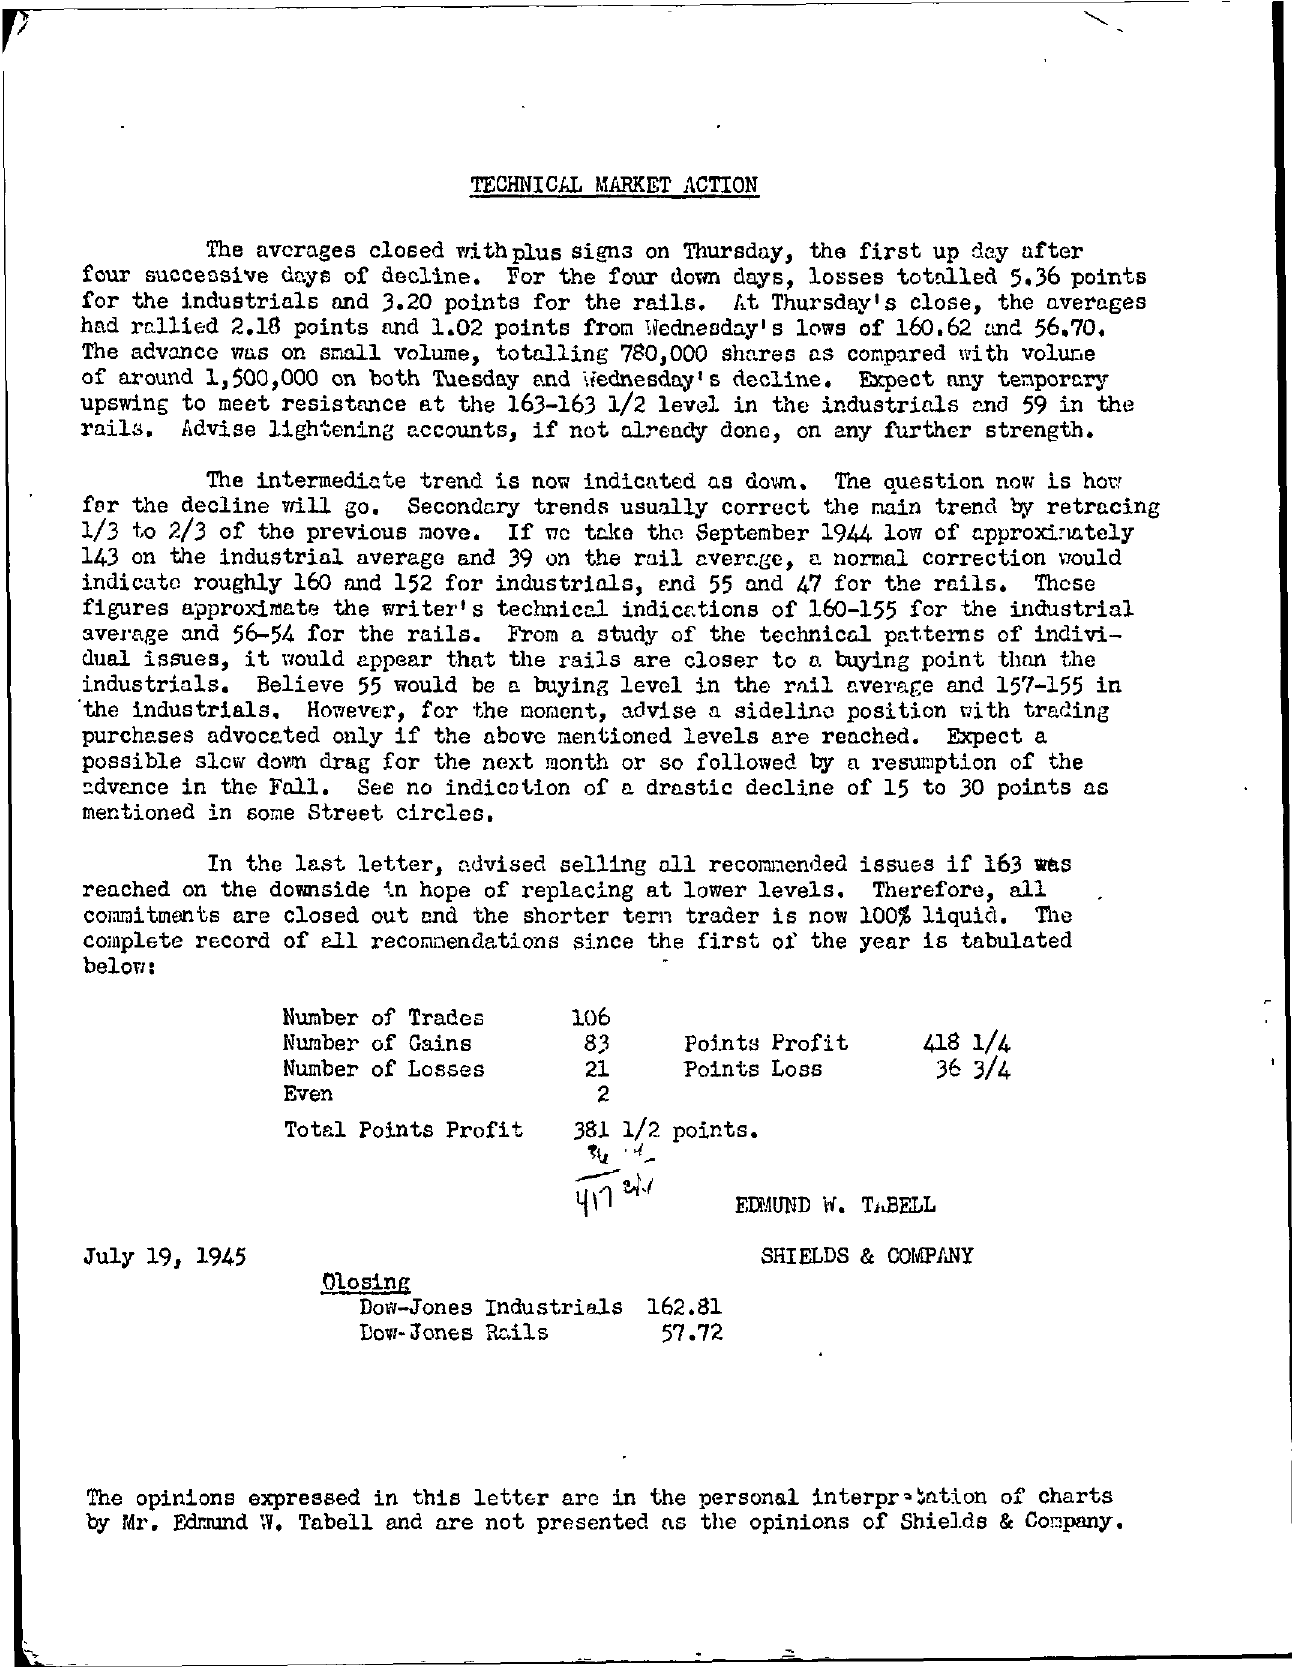 Tabell's Market Letter - July 19, 1945